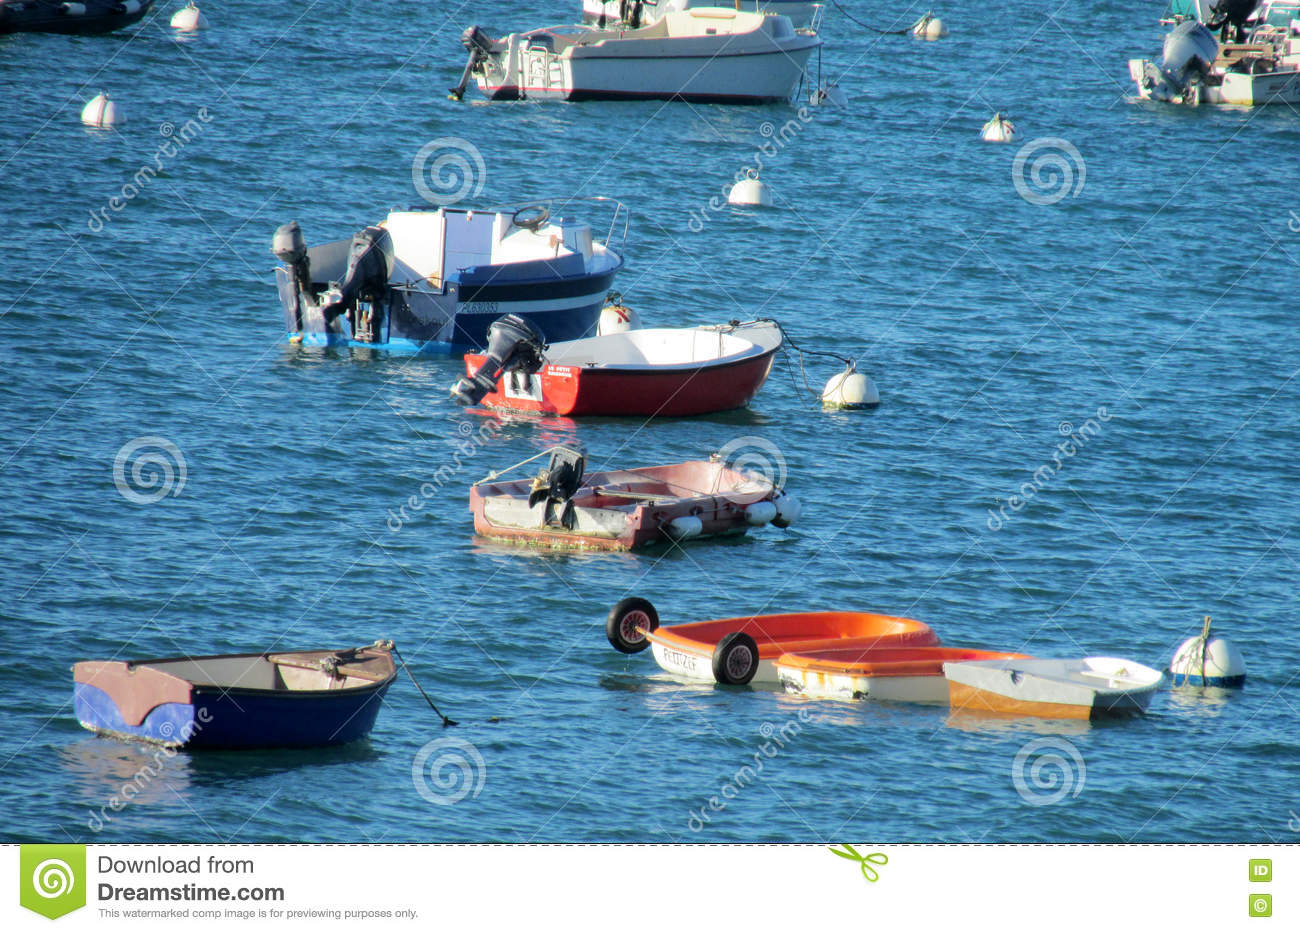 Empty small fishing boats in water